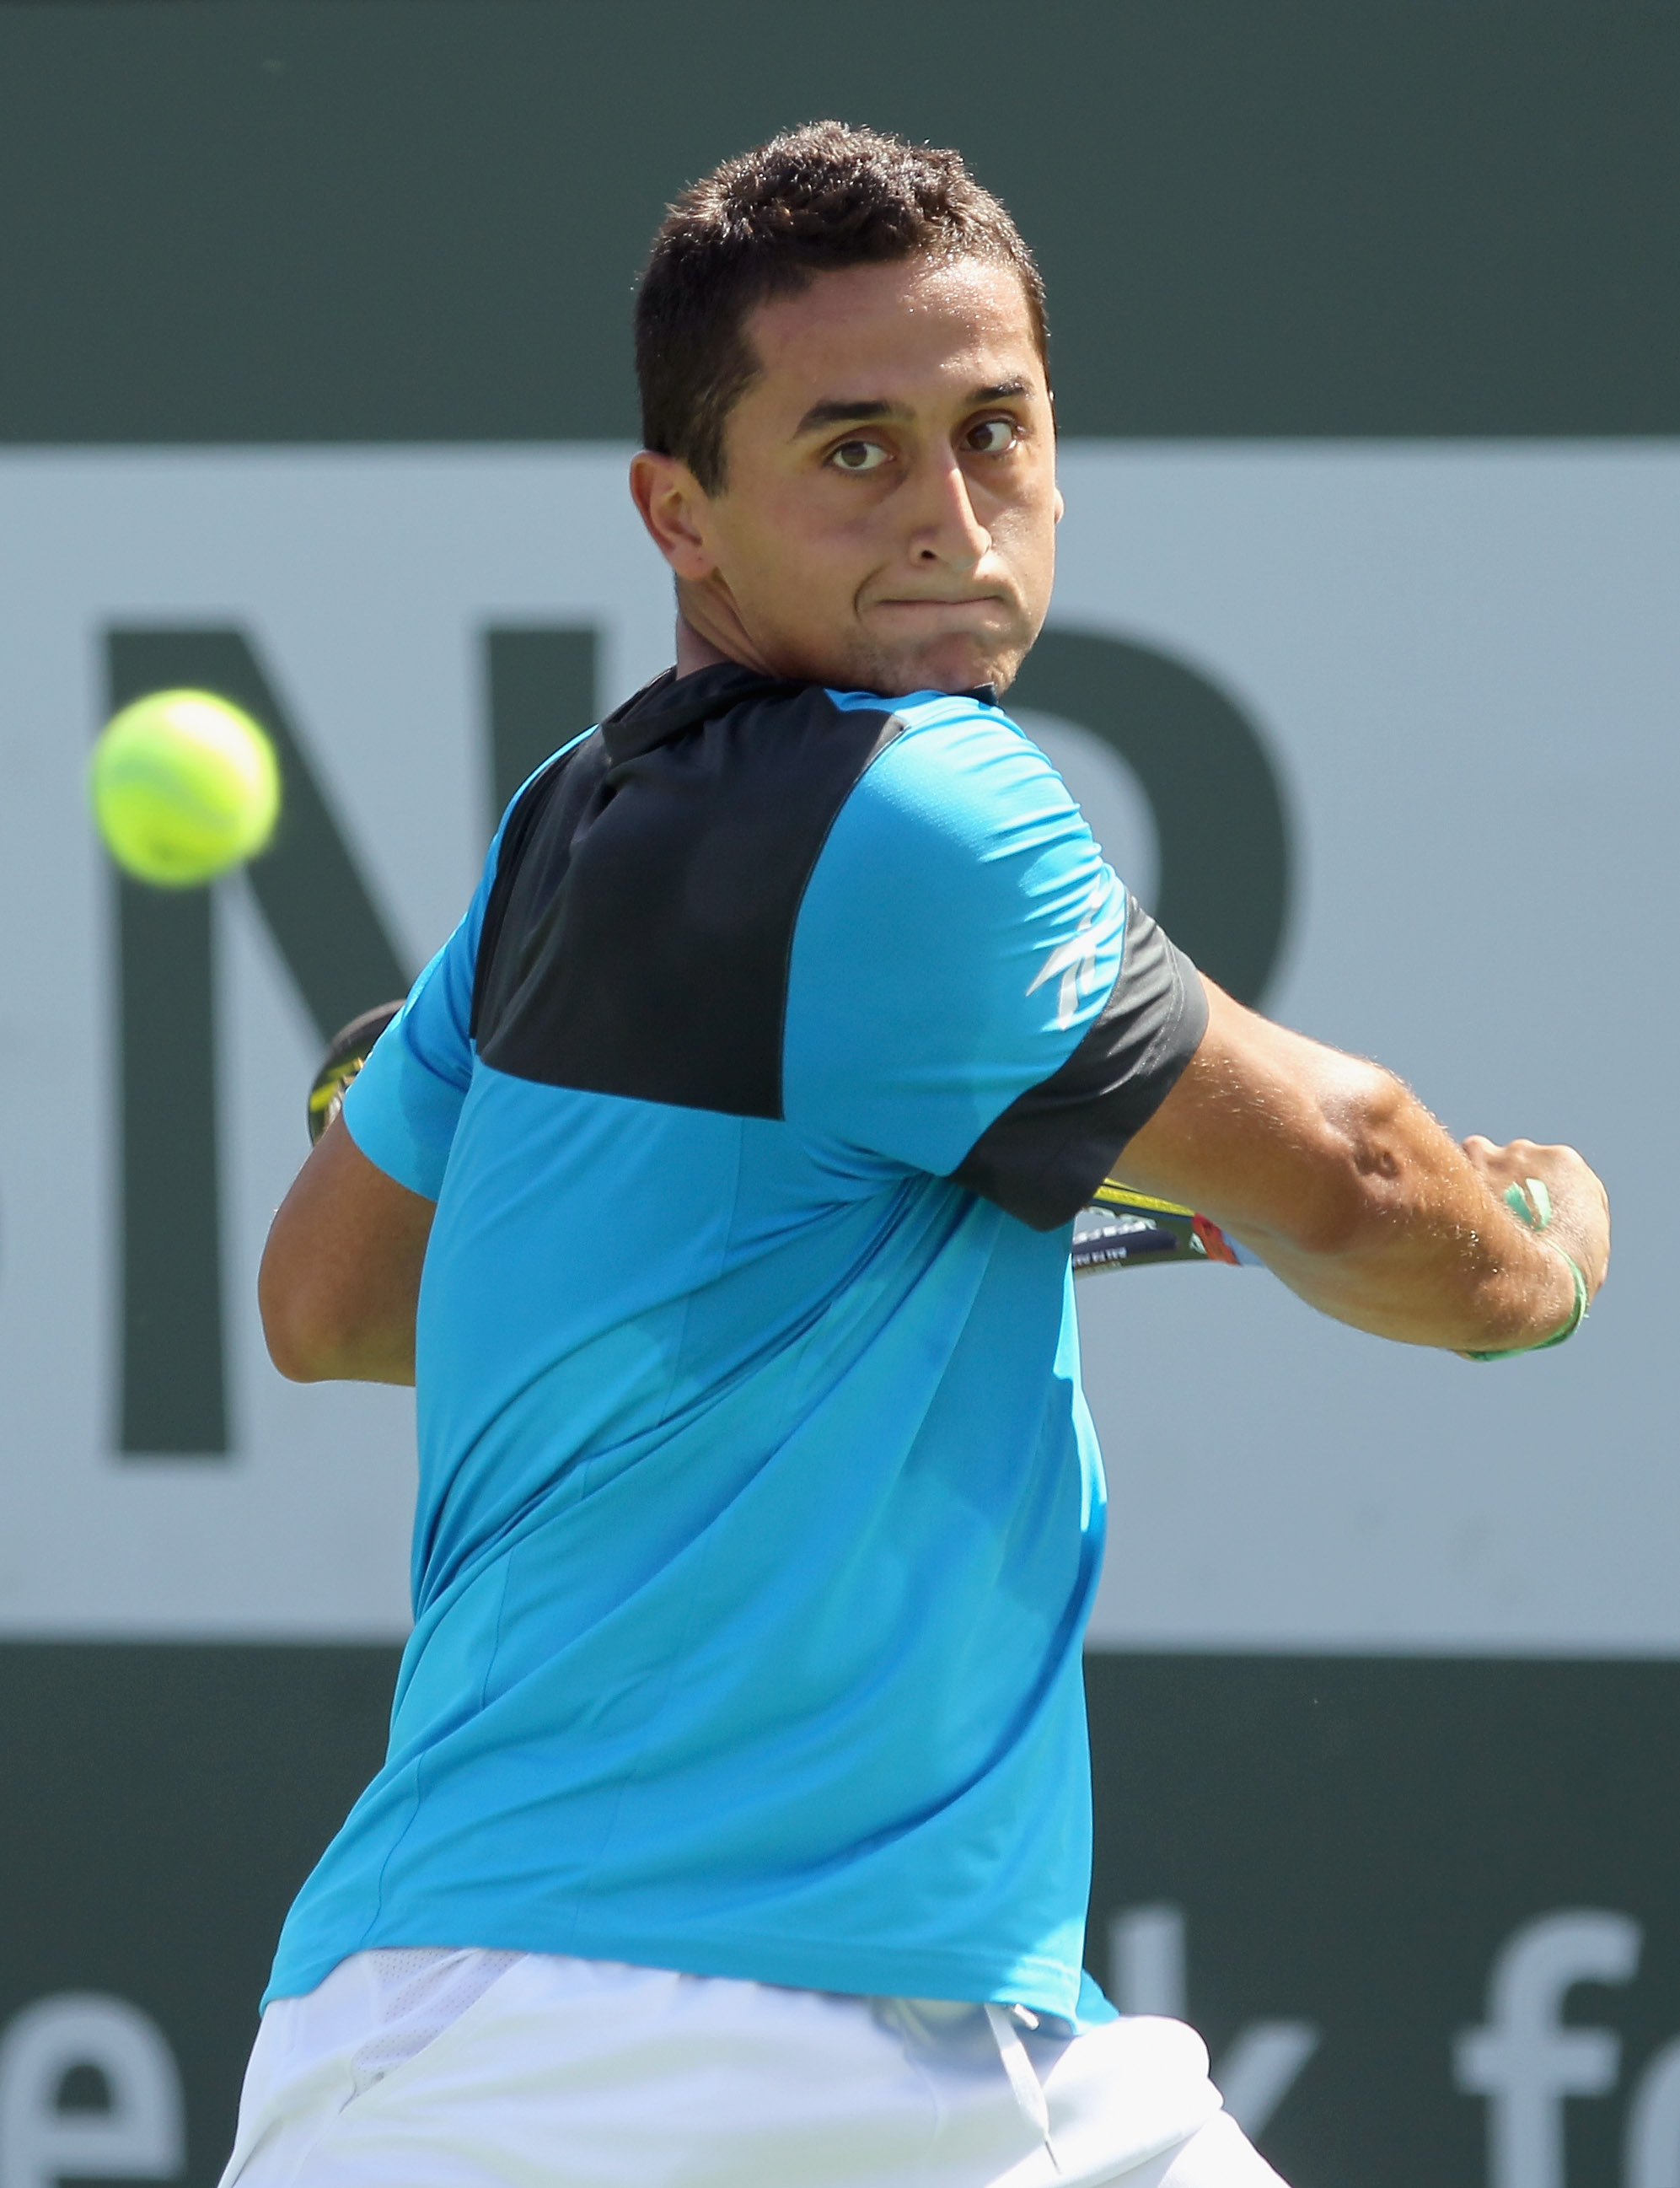 INDIAN WELLS, CA - MARCH 14:  Nicolas Almagro of Spain returns a shot to Albert Montanes of Spain during the BNP Paribas Open at the Indian Wells Tennis Garden on March 14, 2011 in Indian Wells, California.  (Photo by Ezra Shaw/Getty Images)